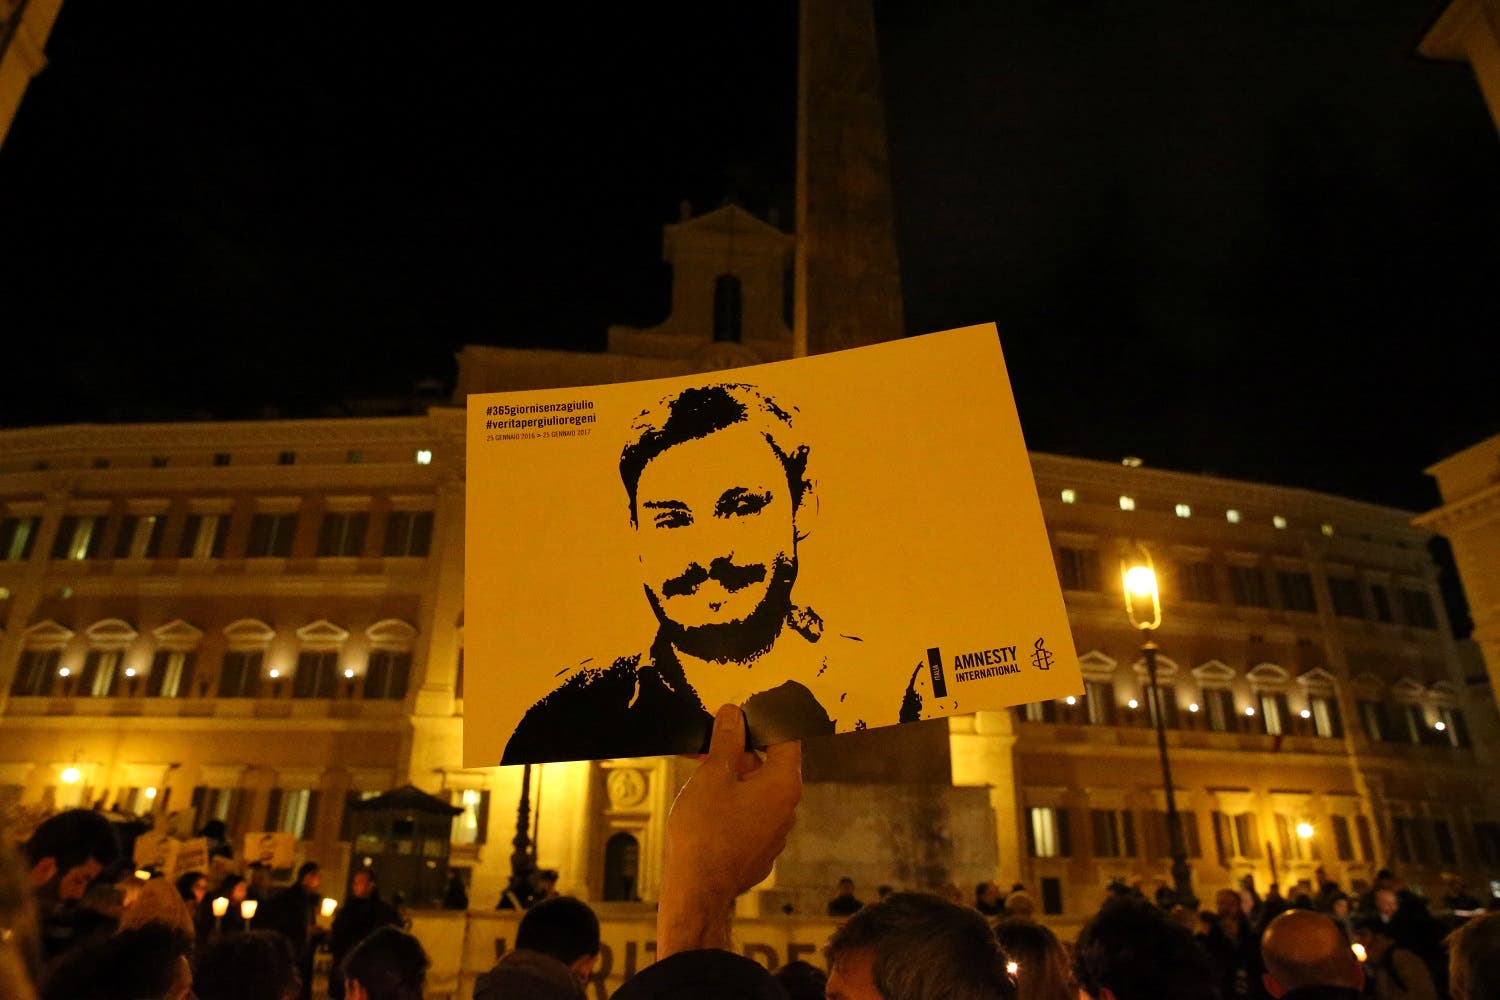 DATE IMPORTED: January 25, 2017 A man holds a placard during a vigil to commemorate Giulio Regeni, who was found murdered in Cairo a year ago, in downtown Rome, Italy January 25, 2017. (Reuters)